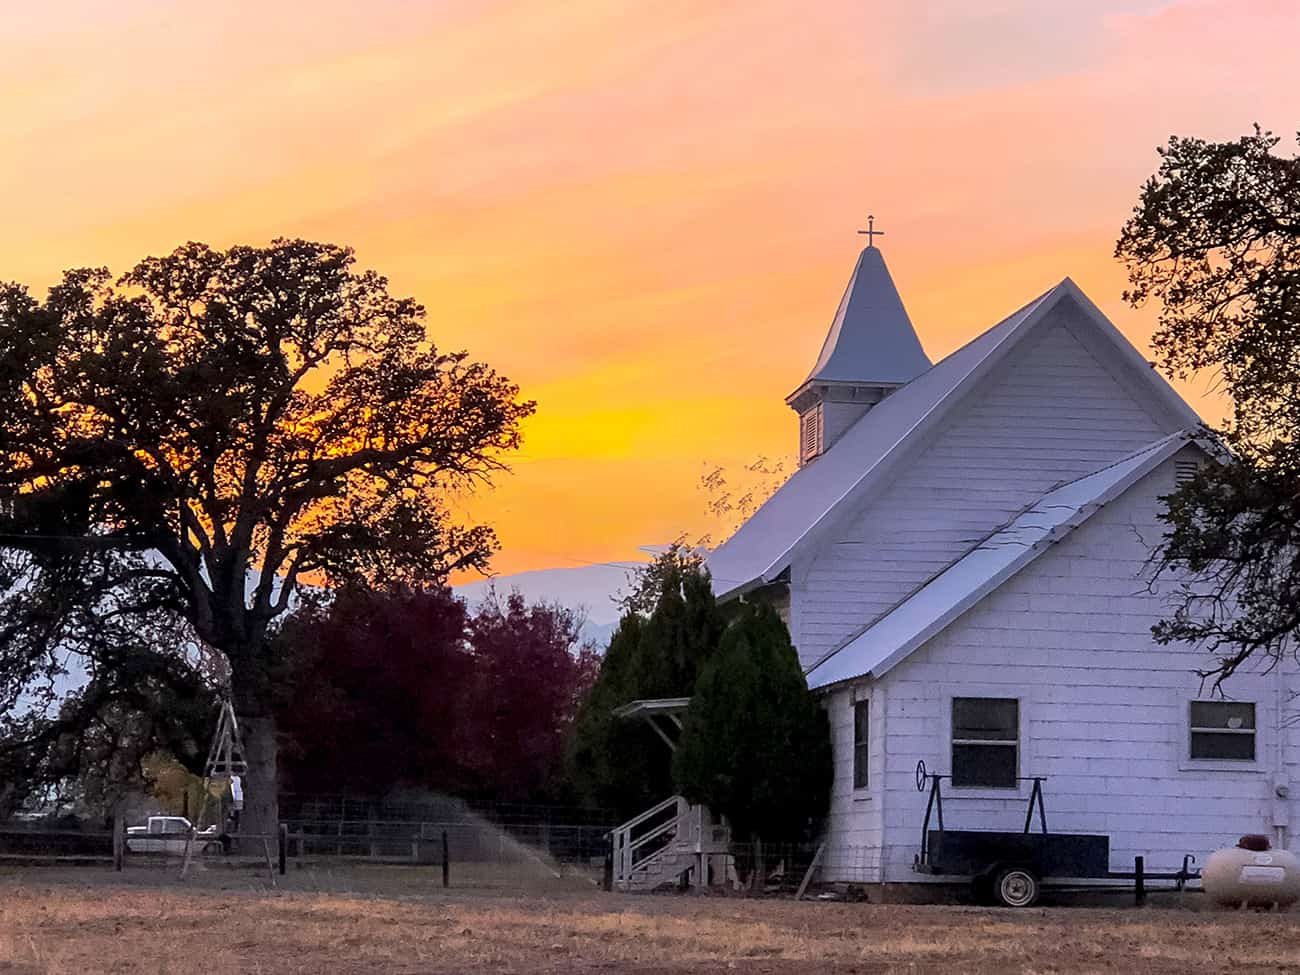 A country church at sunset